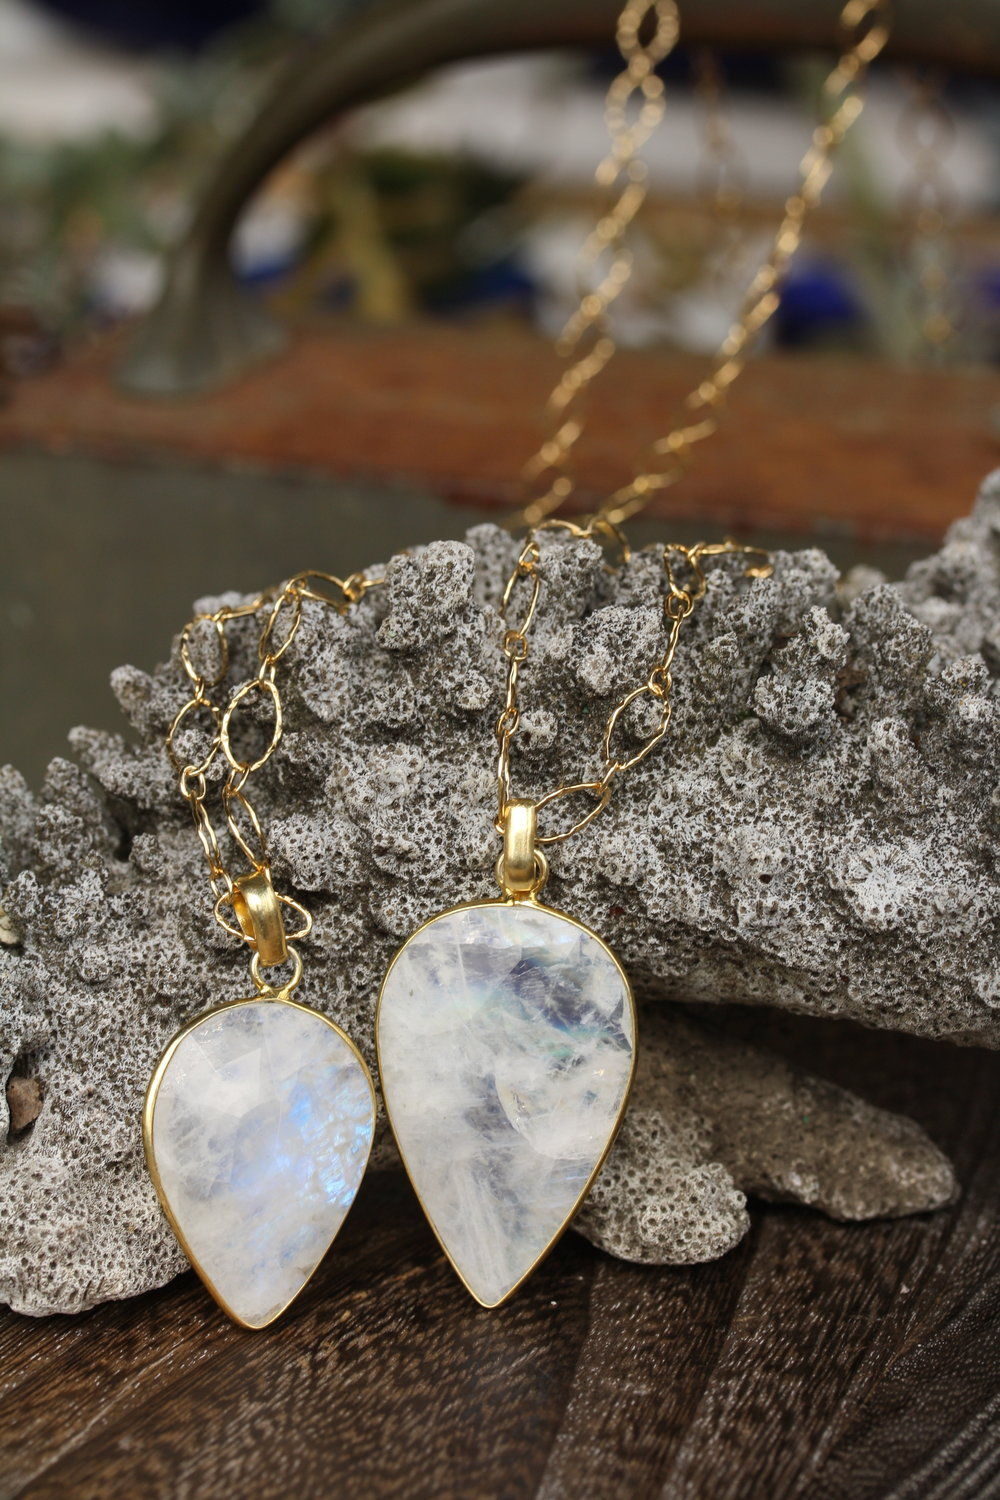 SUNSHINE DAYDREAM Moonstone PS Pendant Necklaces on Hammered Chain_06 copy.JPG